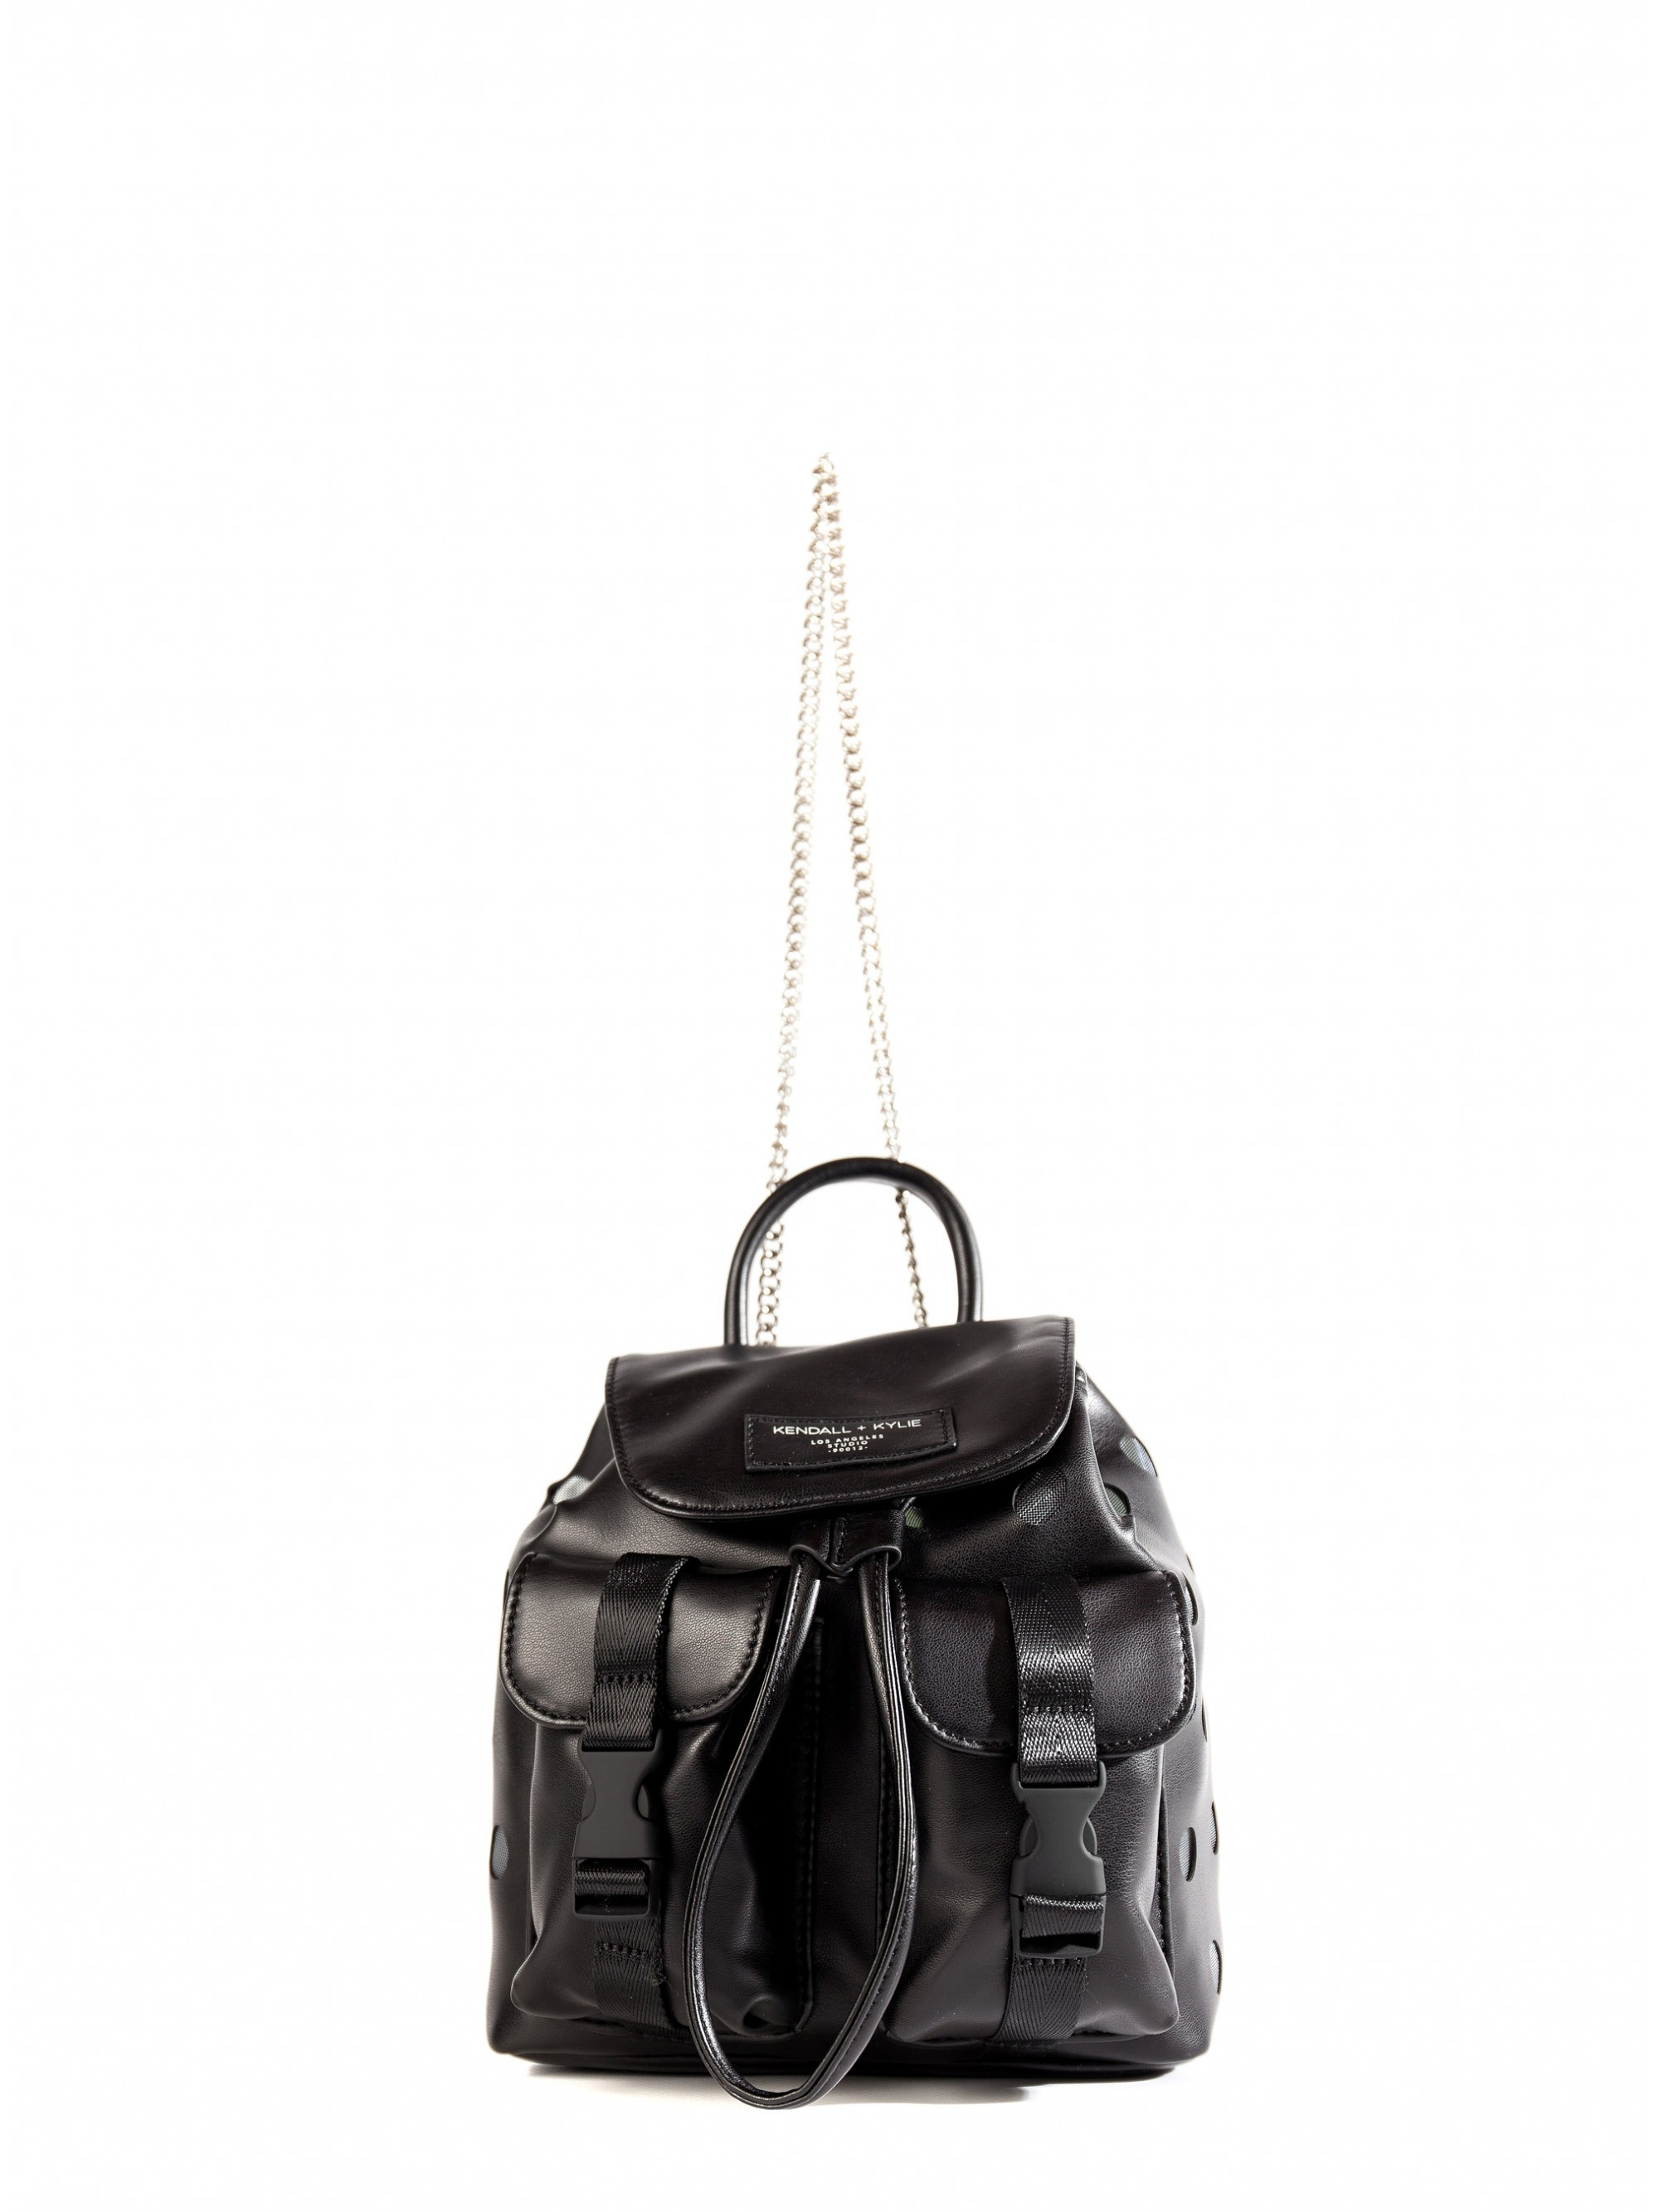 Home  Kendall + Kylie Poppy Small Backpack-Black. Tap to expand · Tap to  expand 34de683334